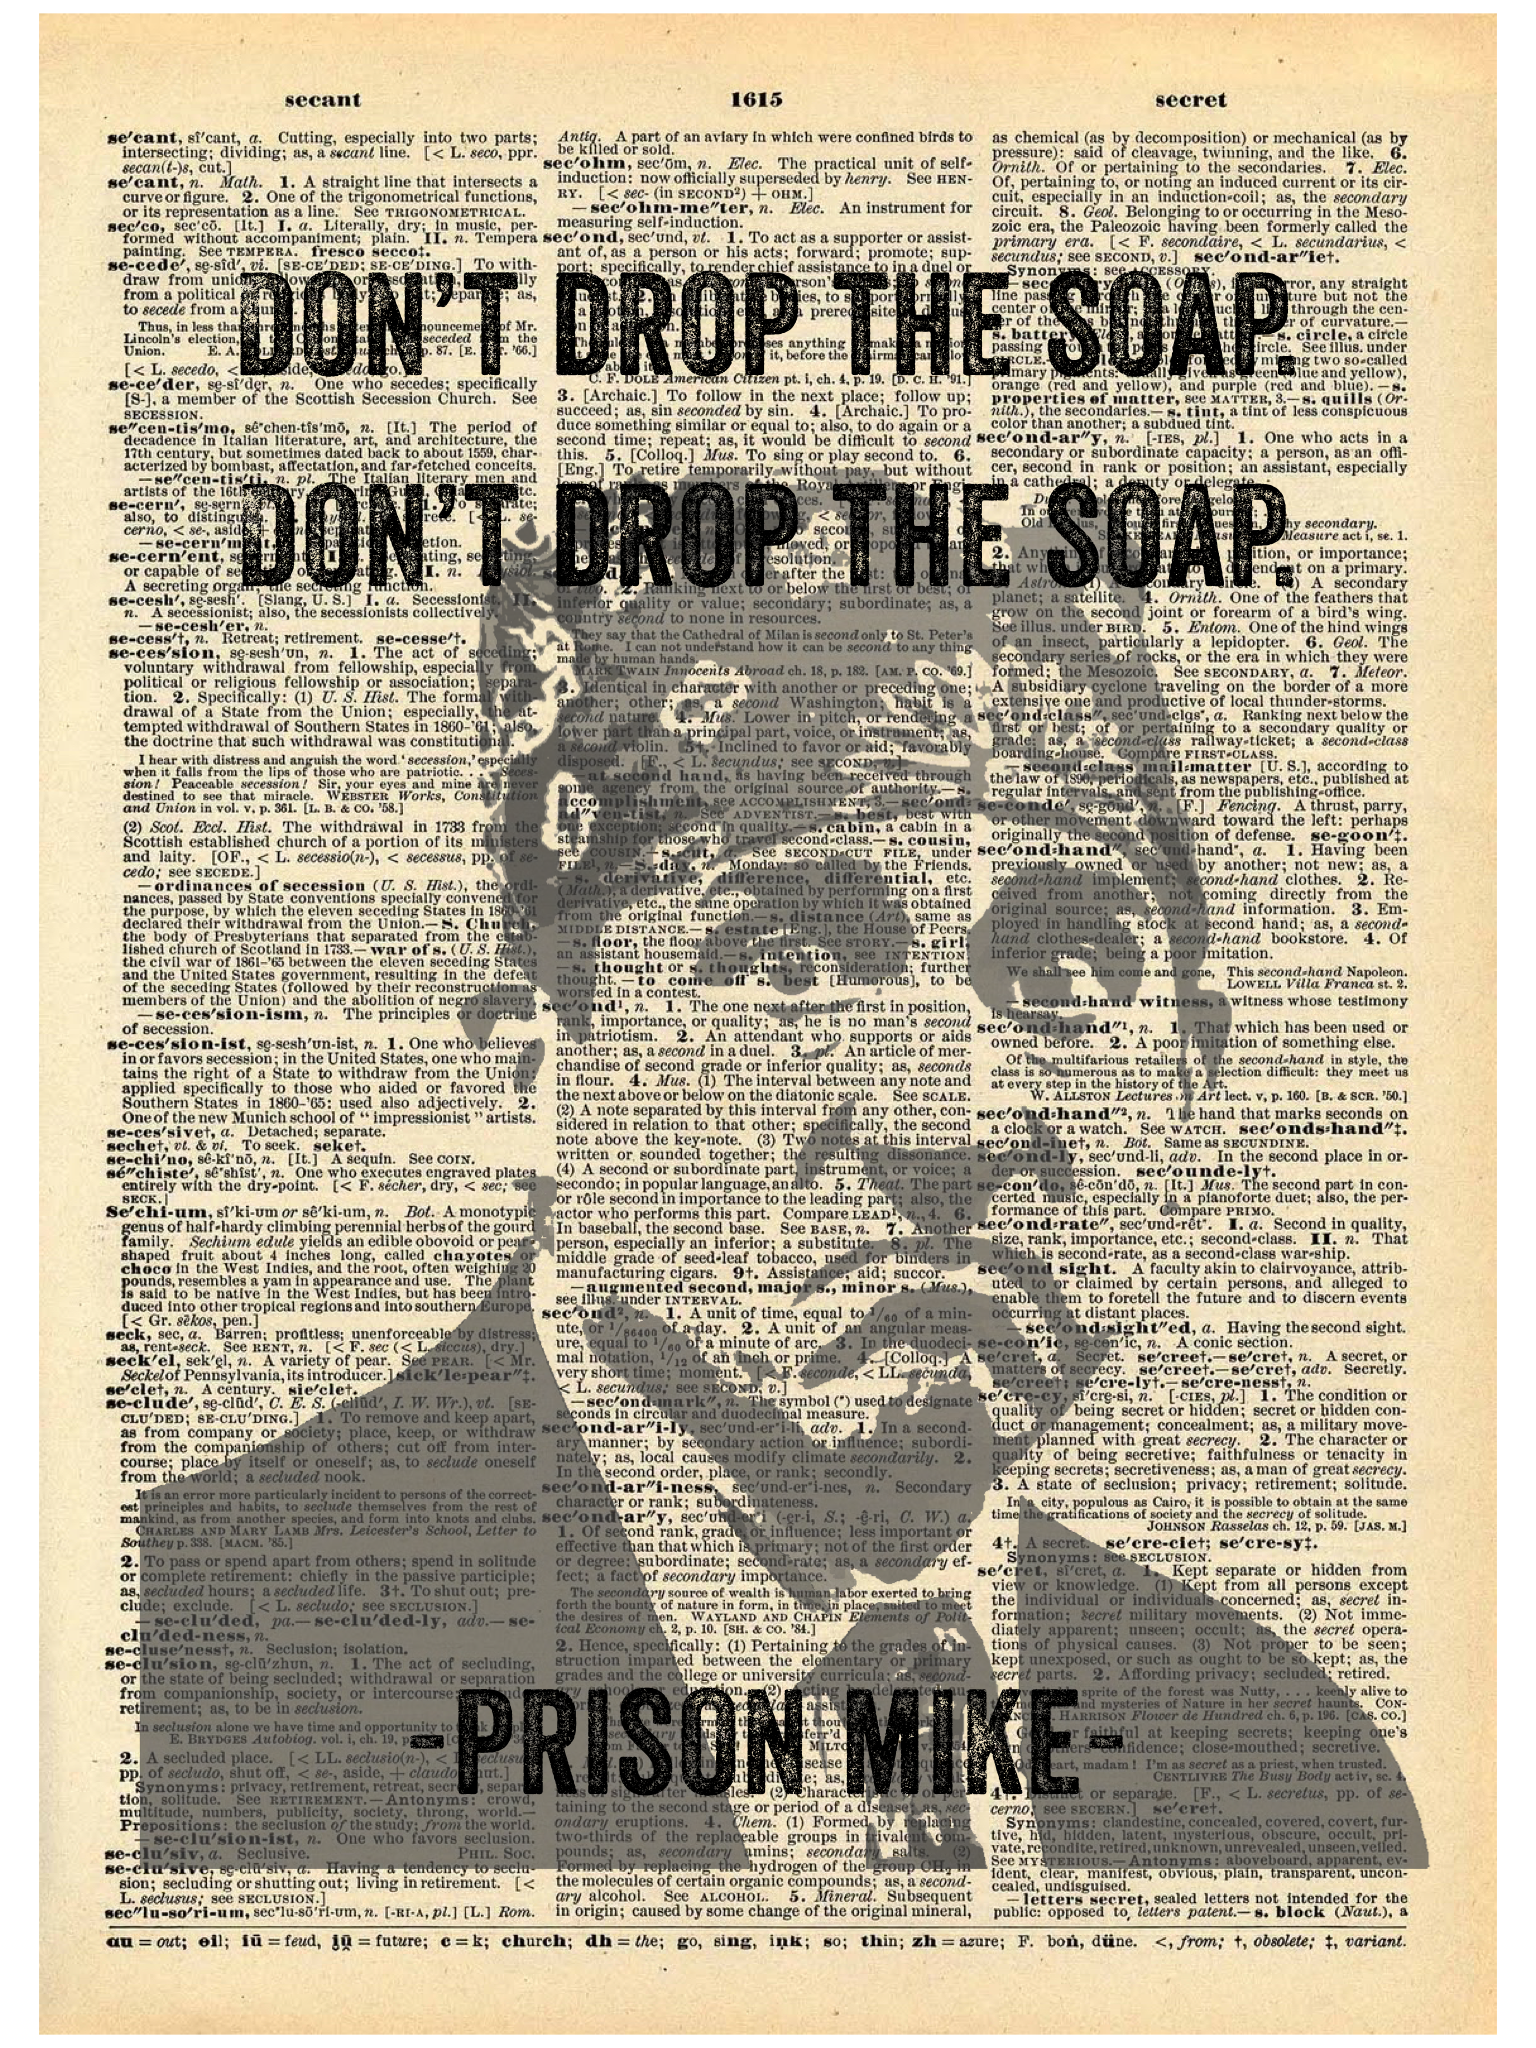 PRISON MIKE DICTIONARY PRINT (WHSL)